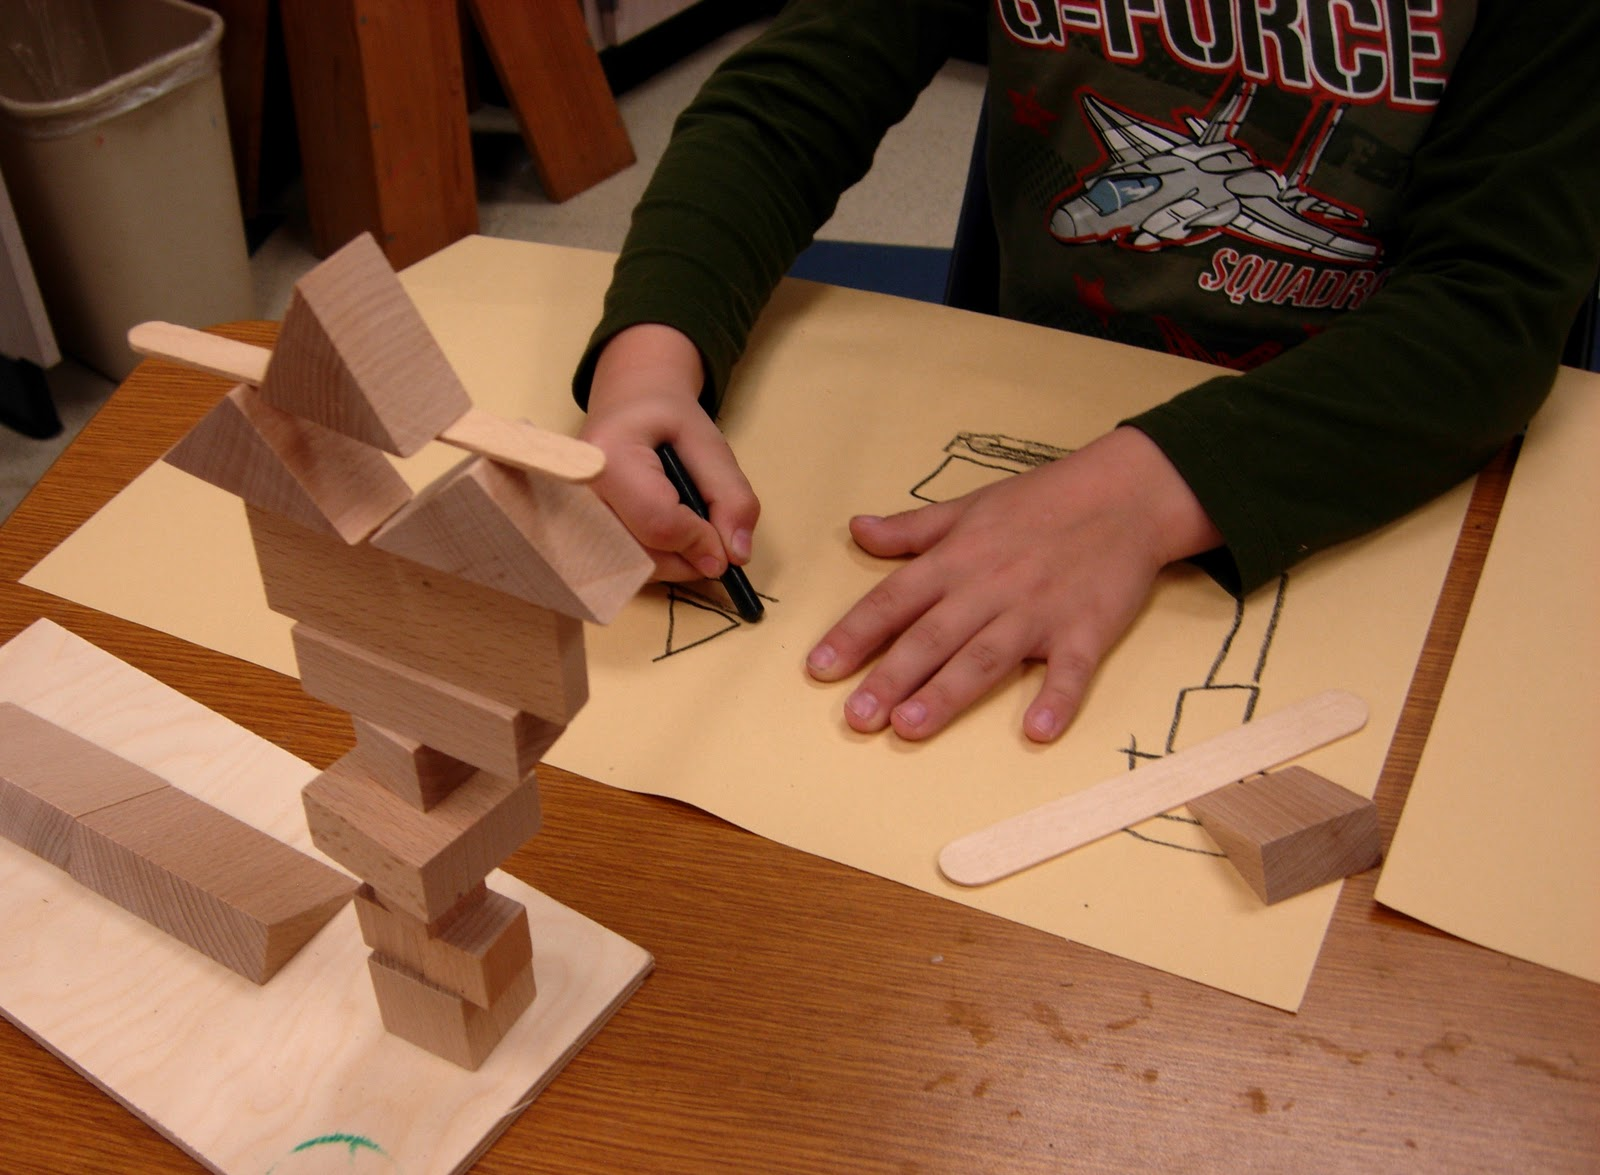 More Thoughts on Kindergarten Architecture